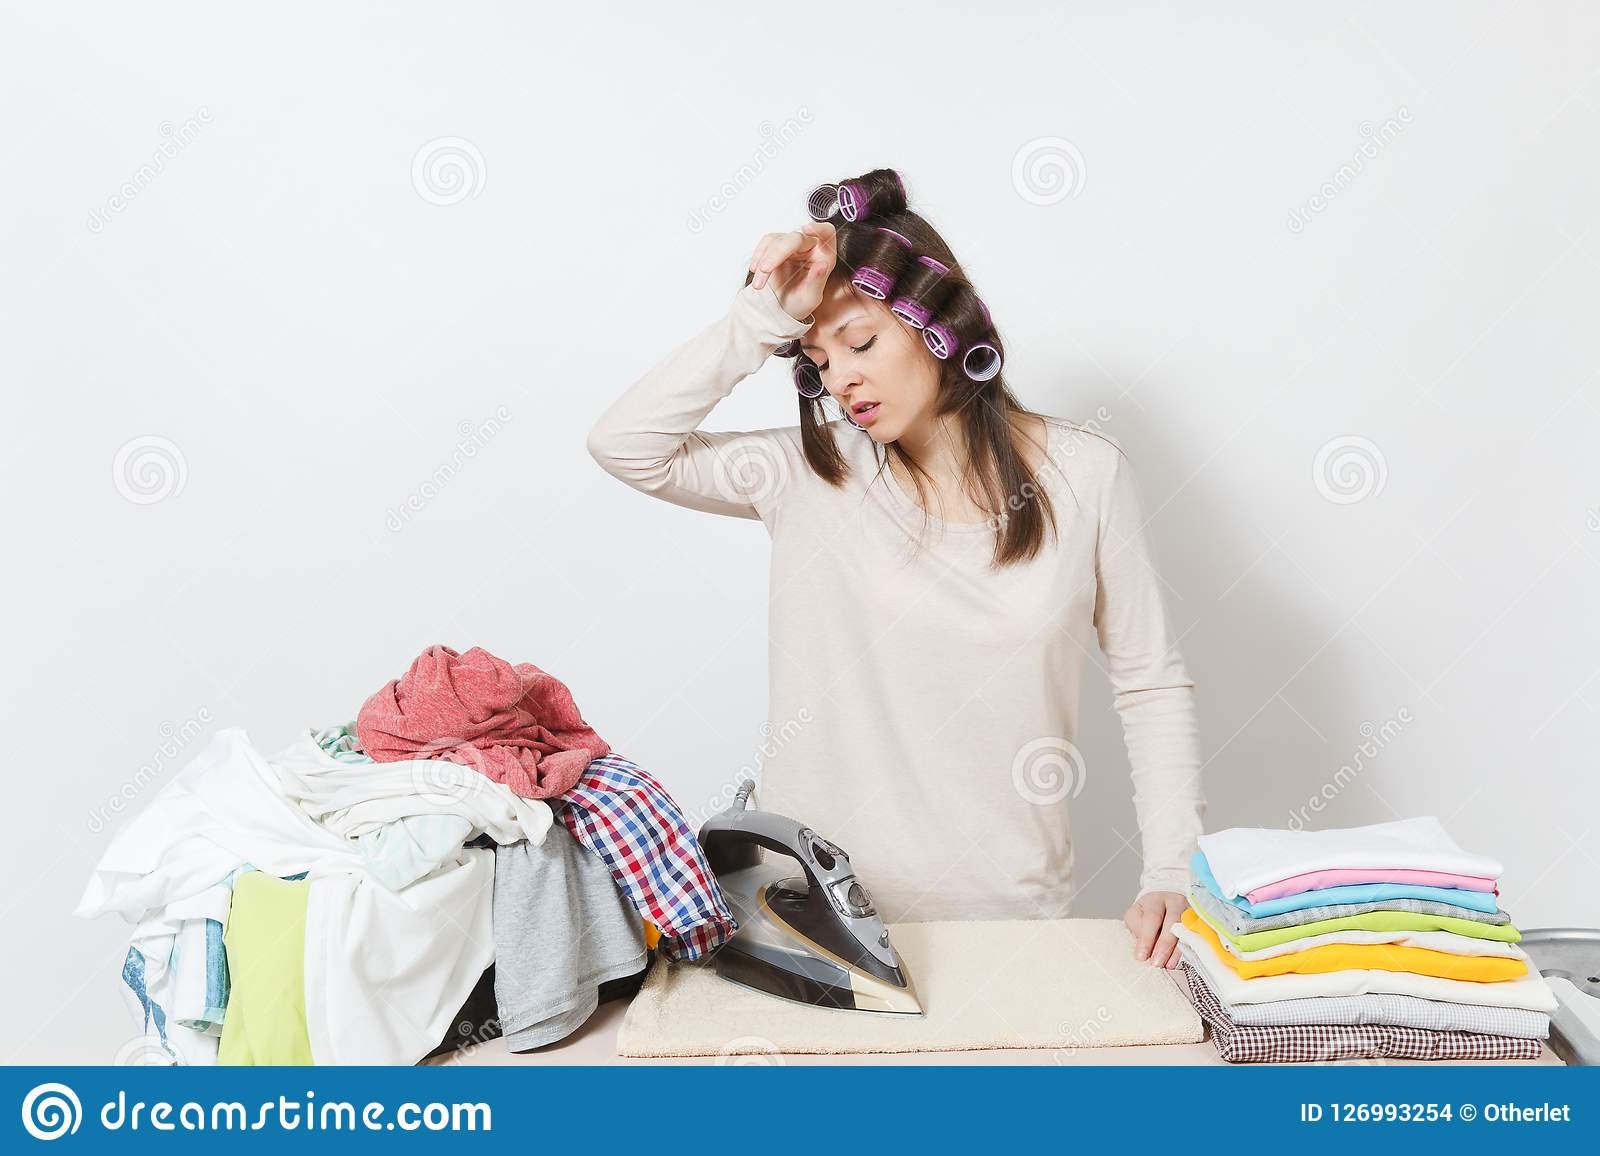 Young pretty housewife. Woman on white background. Housekeeping concept. Copy space for advertisement.